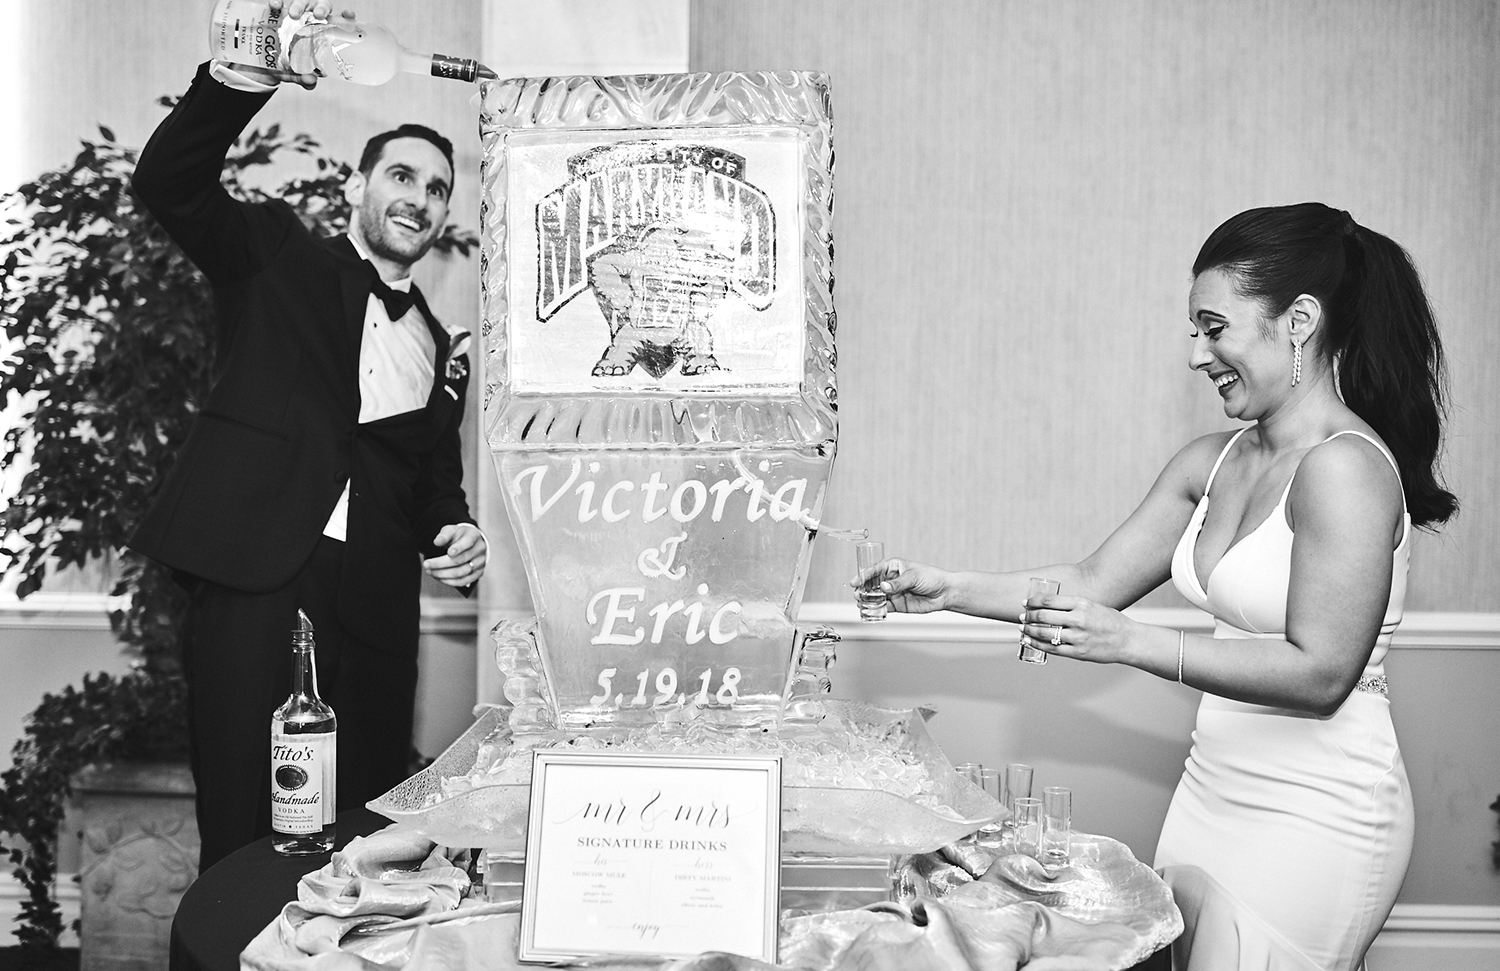 180519_PalaceatSomersetParkWeddingPhotography_NJWeddingPhotographer_By_BriJohnsonWeddings_0138.jpg